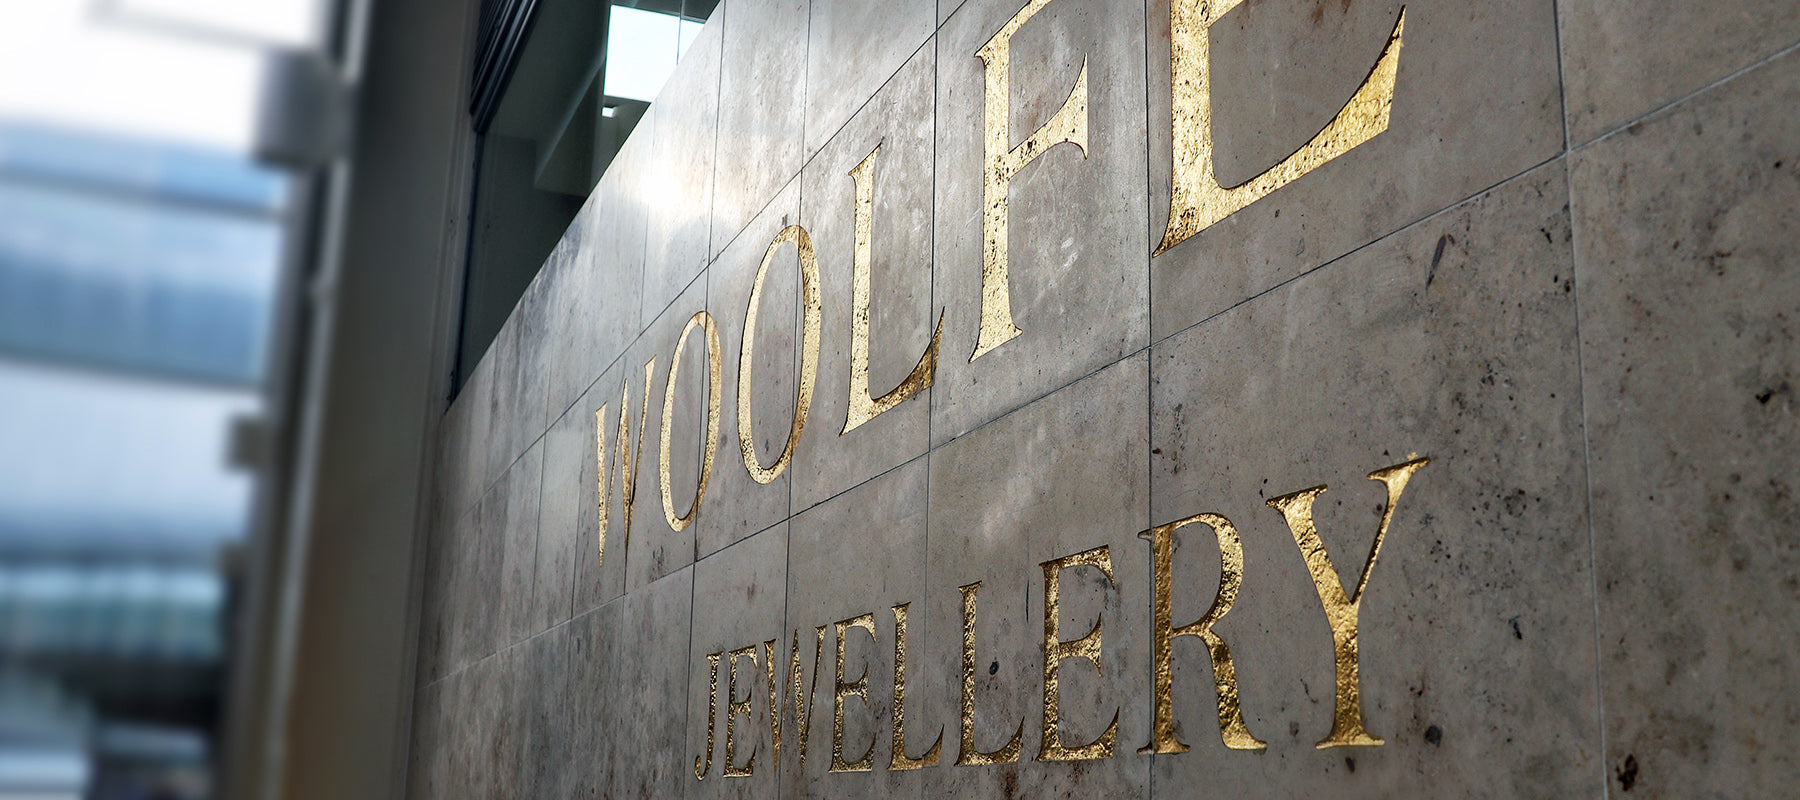 about woolfe jewellery